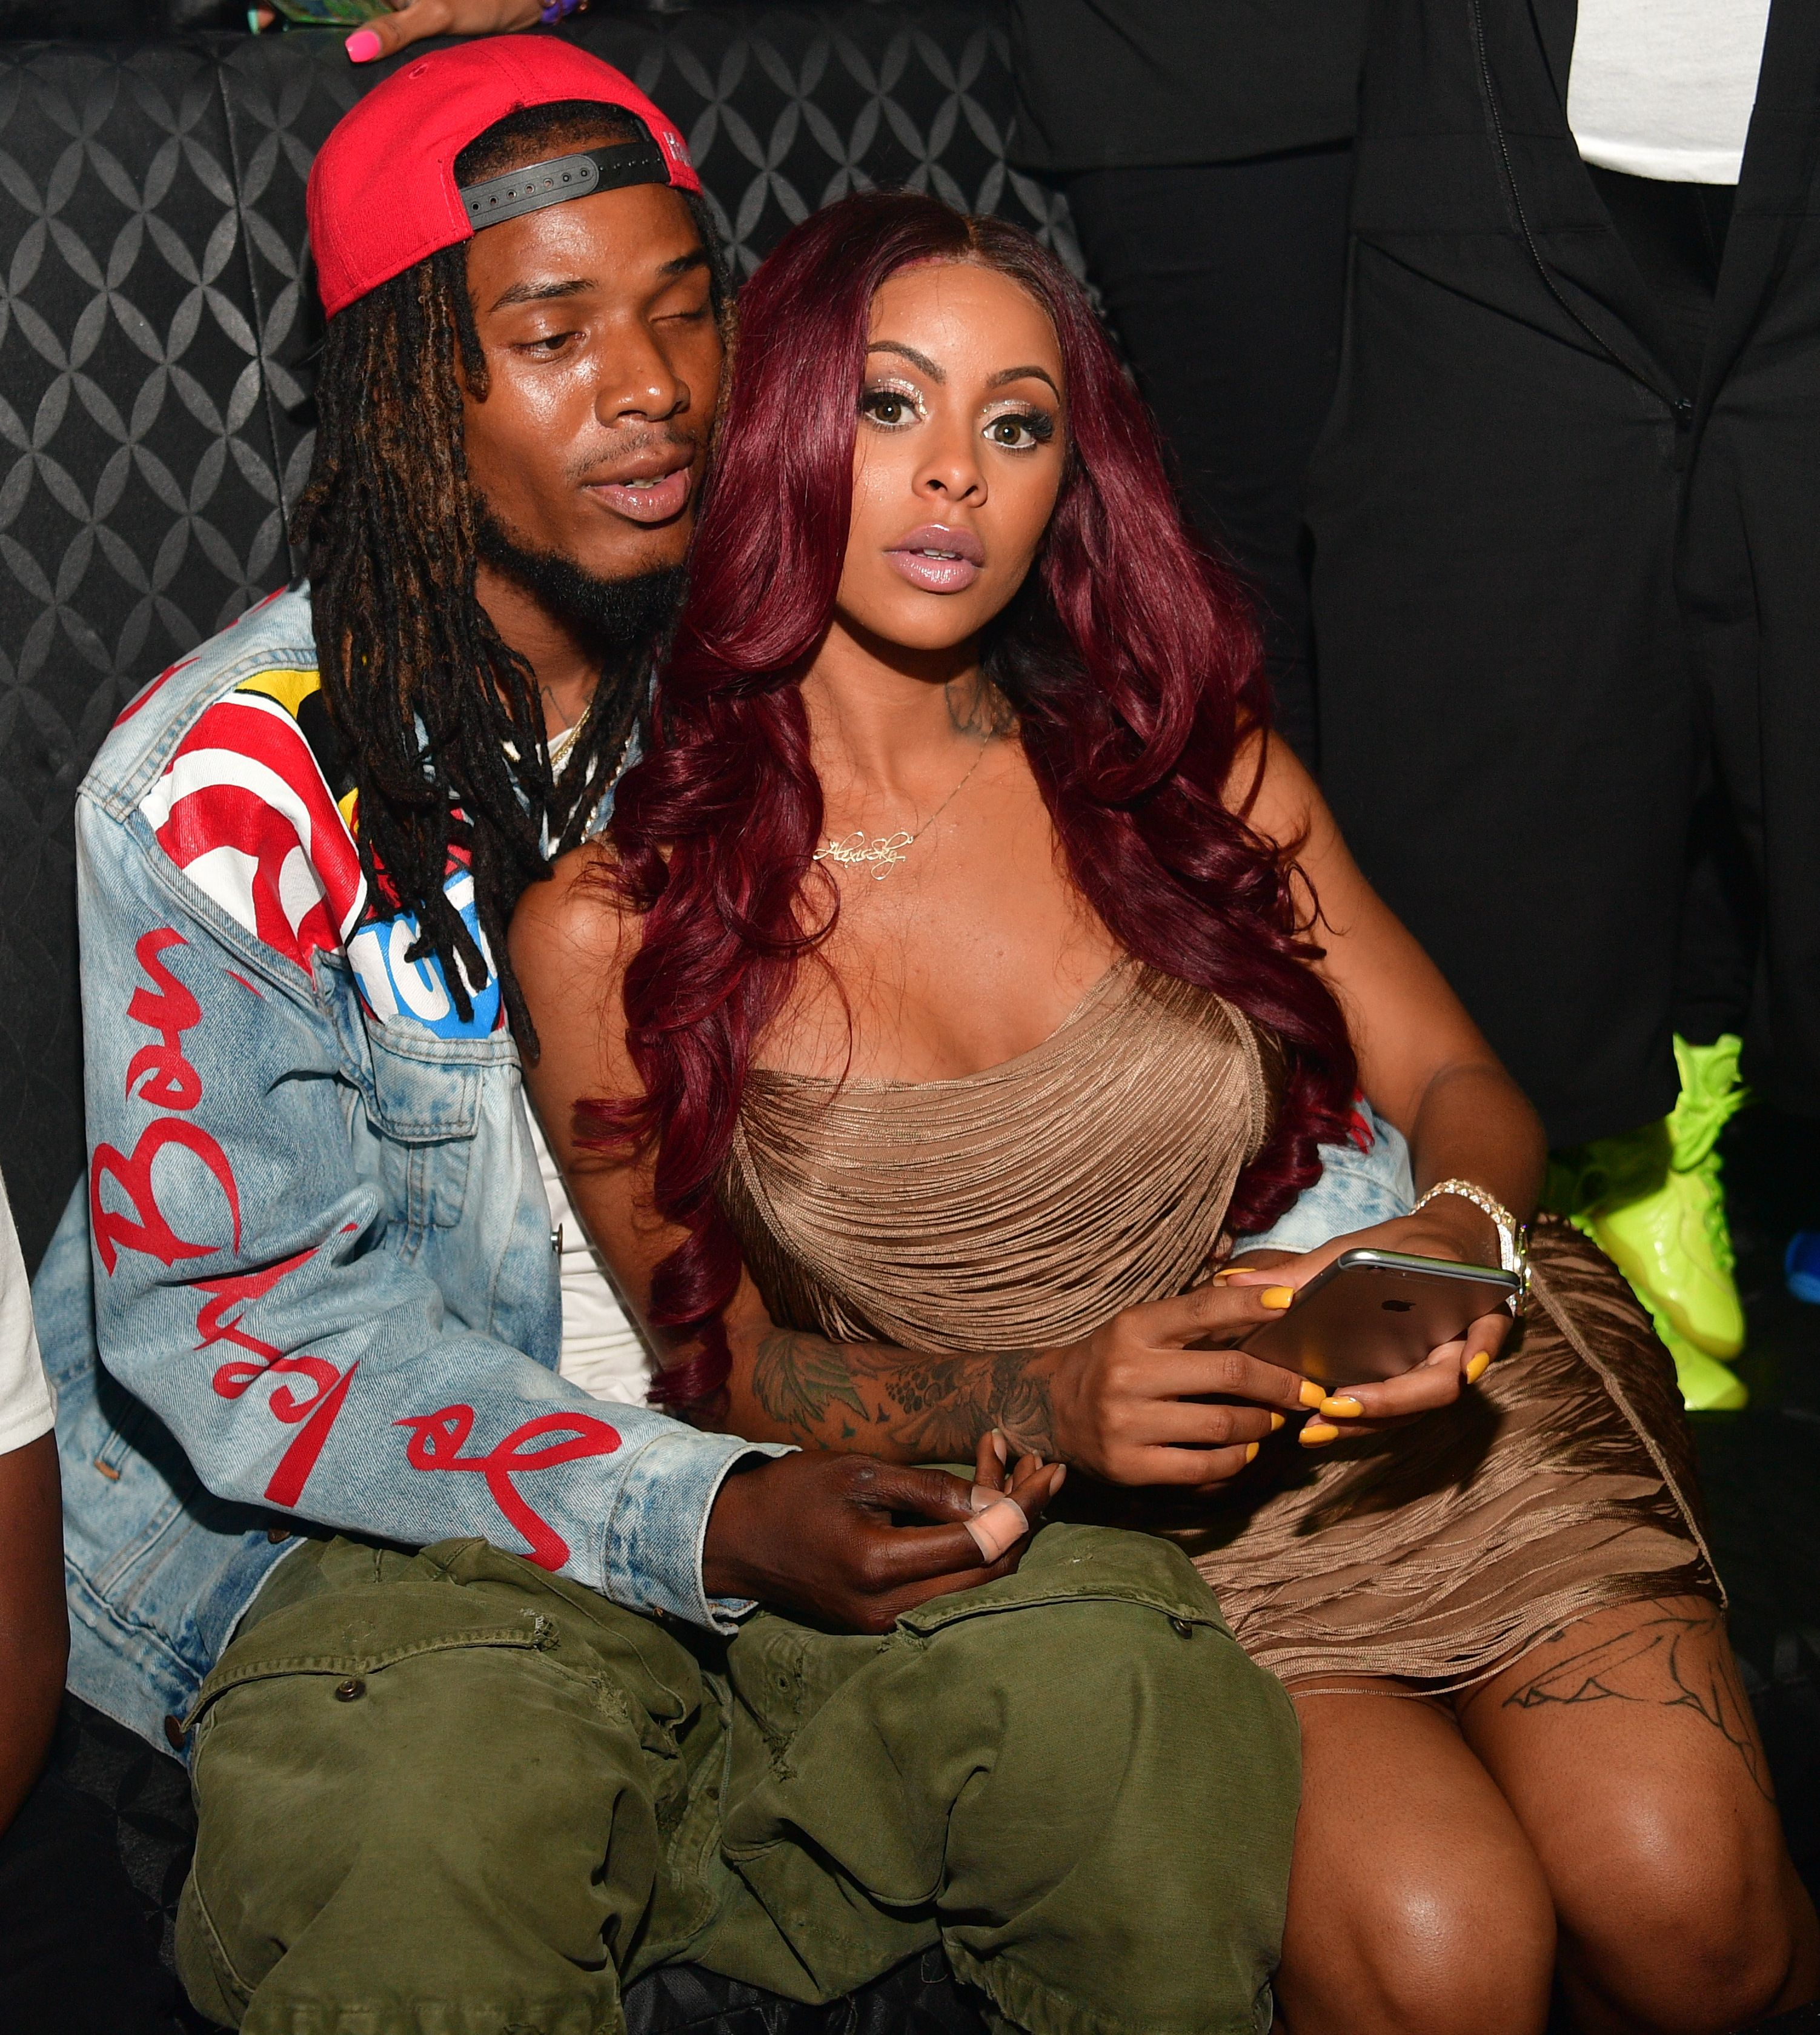 Fetty Wap and Alexis Sky at the Medusa Lounge in Atlanta, Georgia in July 2016/ Source: Getty Images